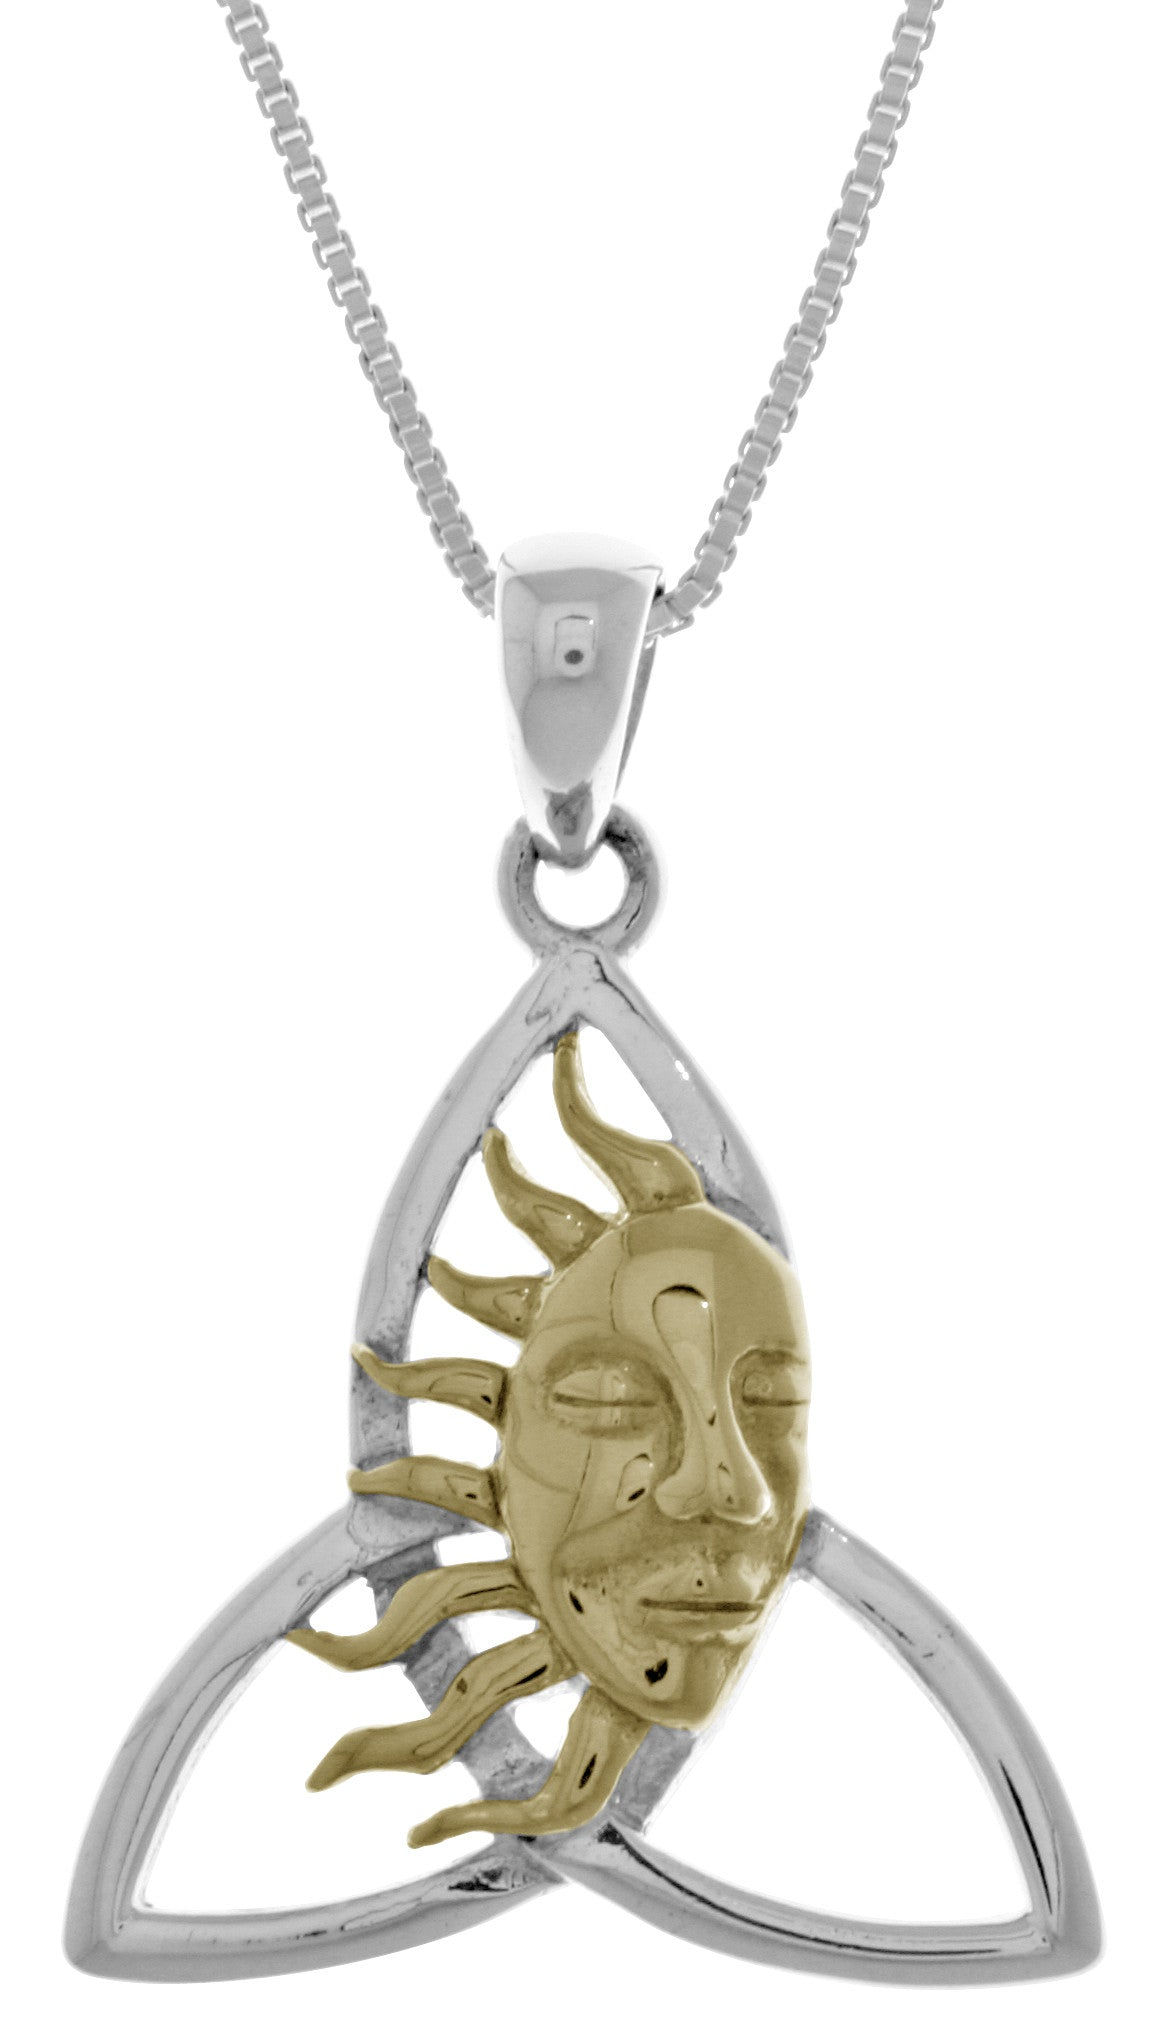 Jewelry Trends Sterling Silver Celtic Trinity Knot Pendant with 14k Gold-Plated Sun Face on 18 Inch Chain Necklace